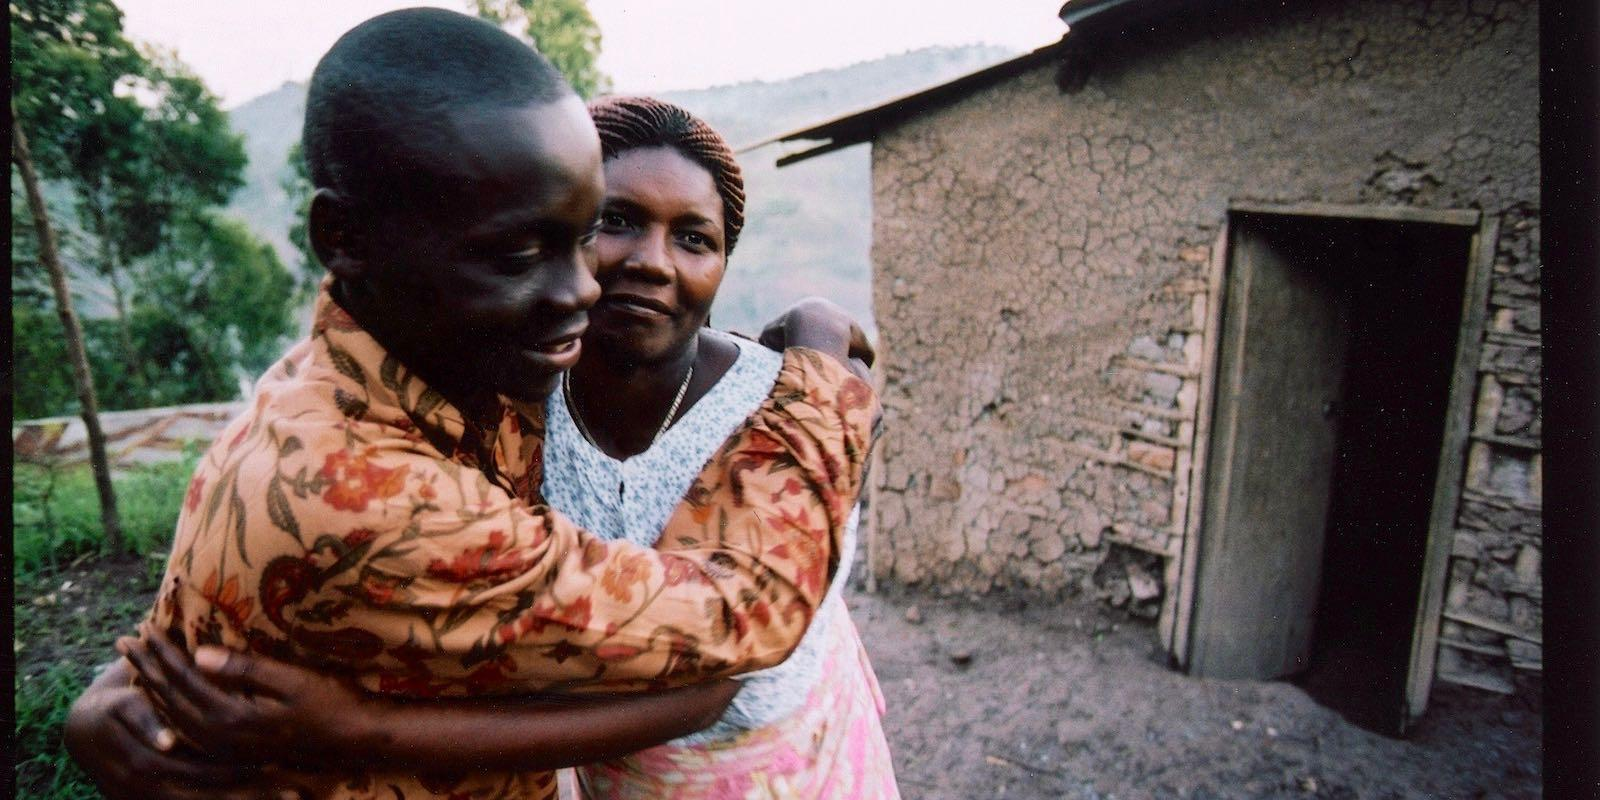 Bwami and his mum outside their house